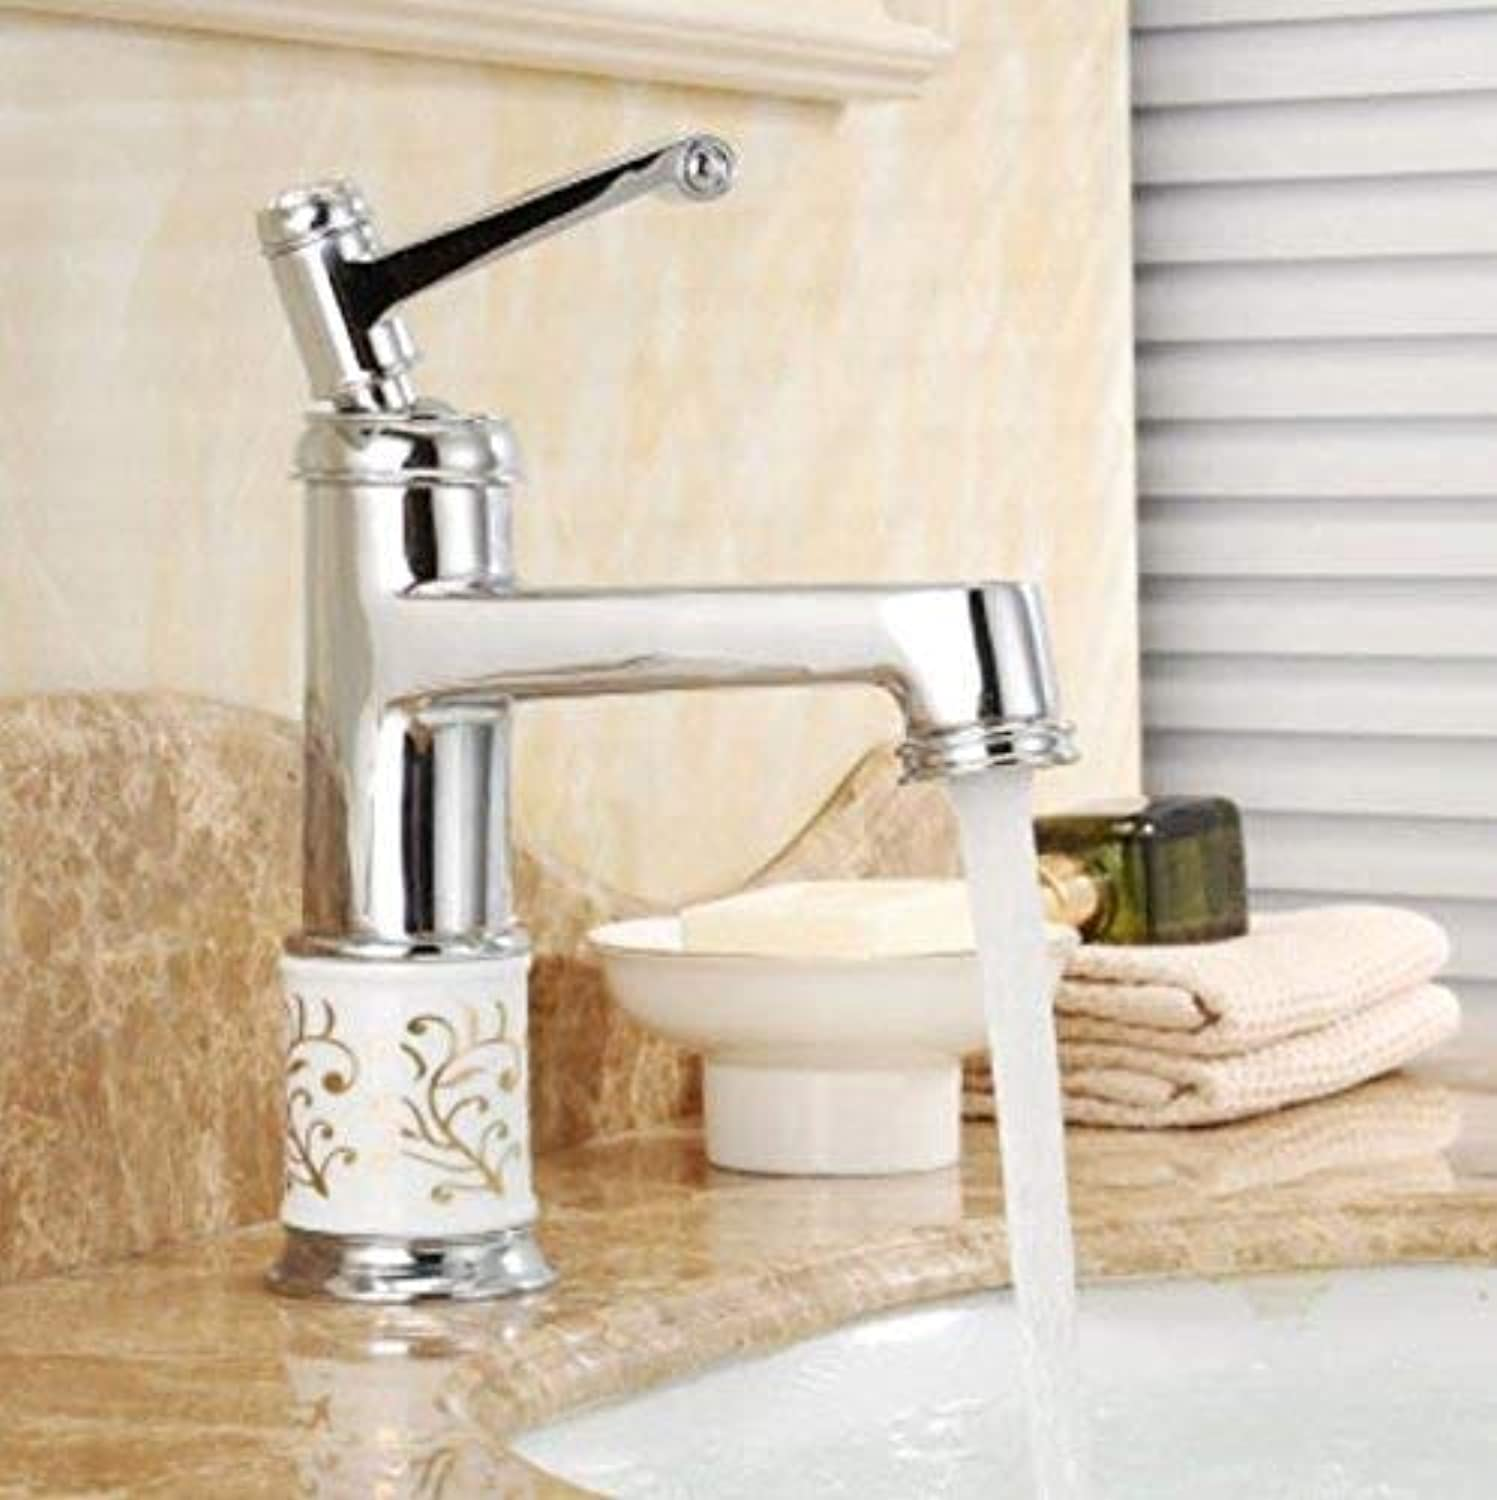 European Style Chrome Plated Single Hole Hot and Cold All Copper Basin Basin Faucet Antique Wash Basin Faucet European Basin Upper Basin Washbasin Faucet Ceramic Disc Spool,A ( color   A , Size   - )